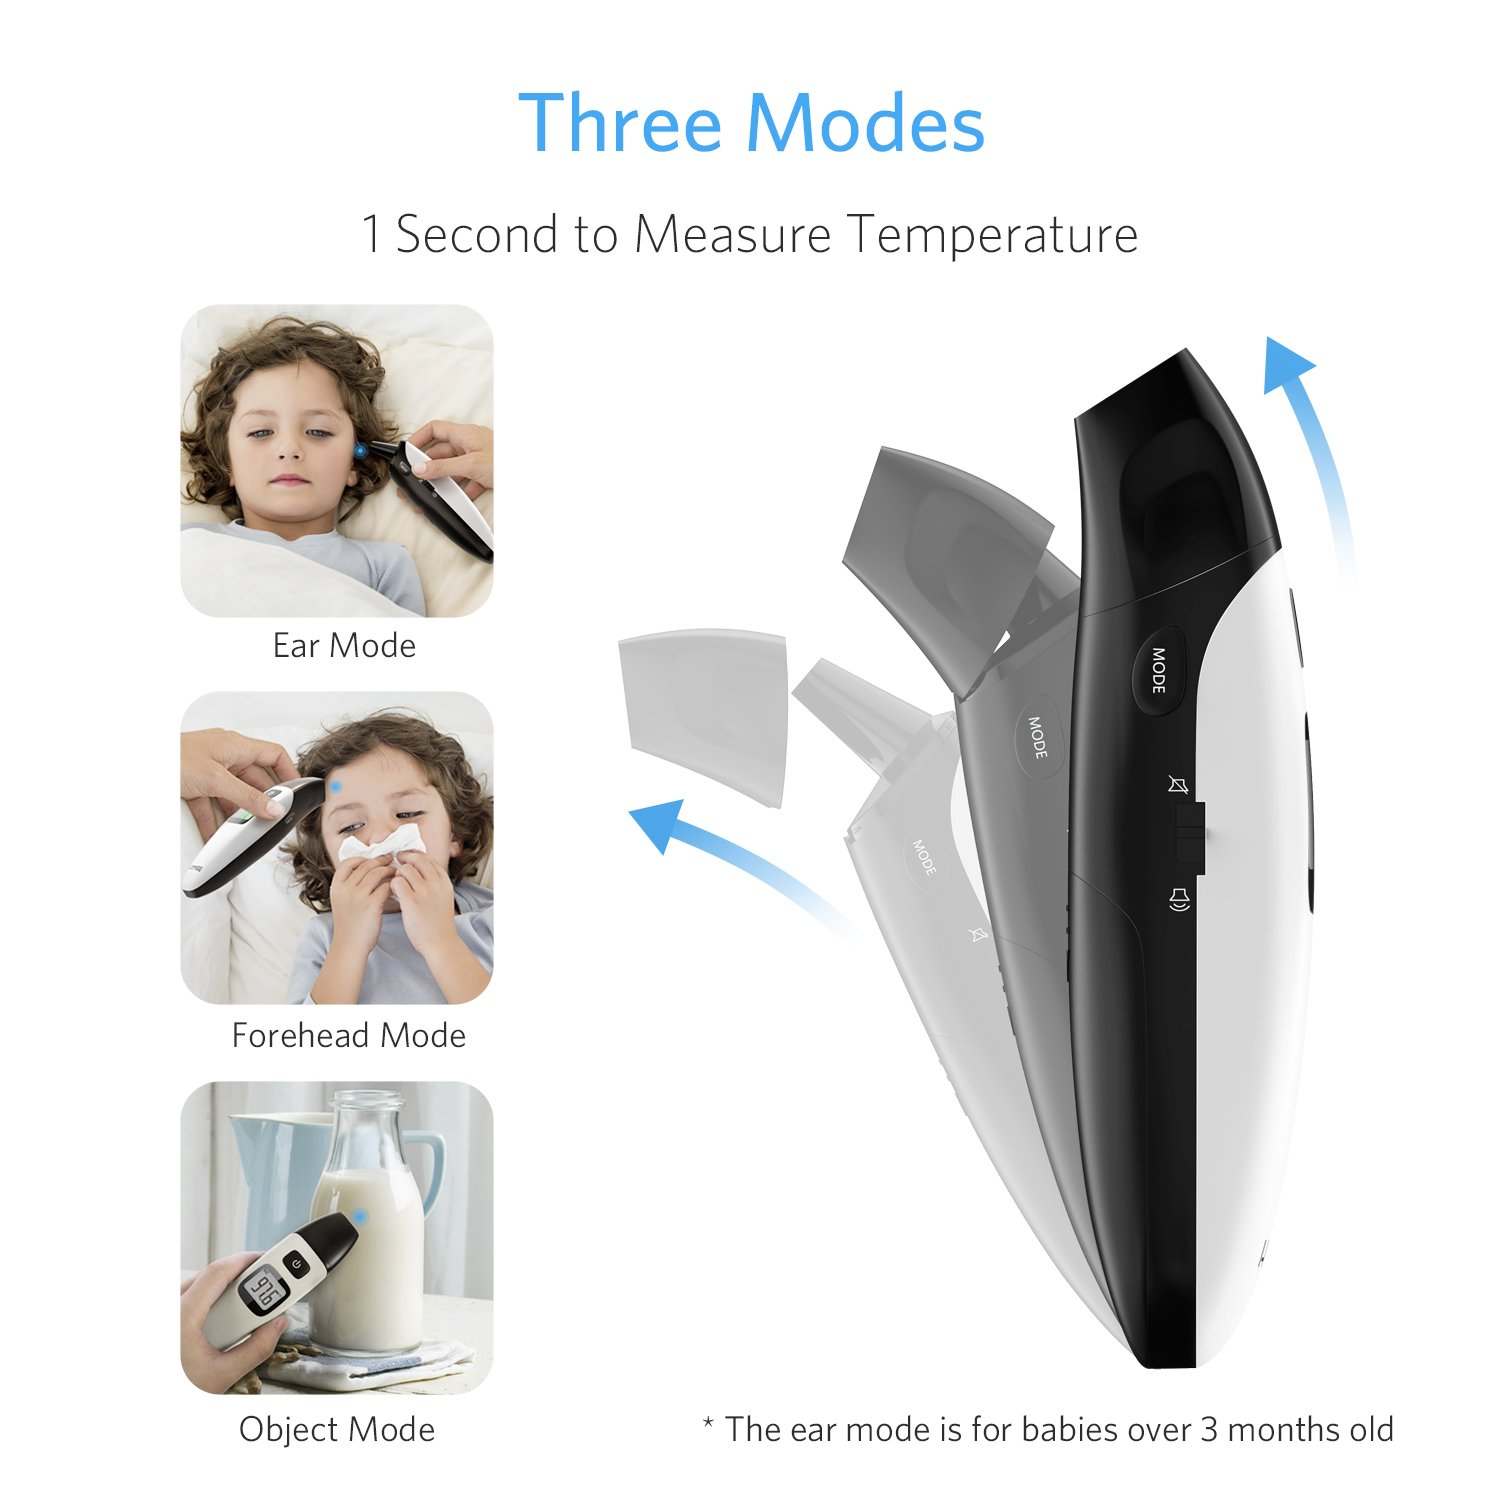 HOMIEE Black Thermometer, Ear Thermometer for Kids, Non Contact Infrared Digital Forehead Thermometer with Fever Alert and Three Color Backlit for Baby and Adults, FDA and CE Certifications Approved by HOMIEE (Image #2)